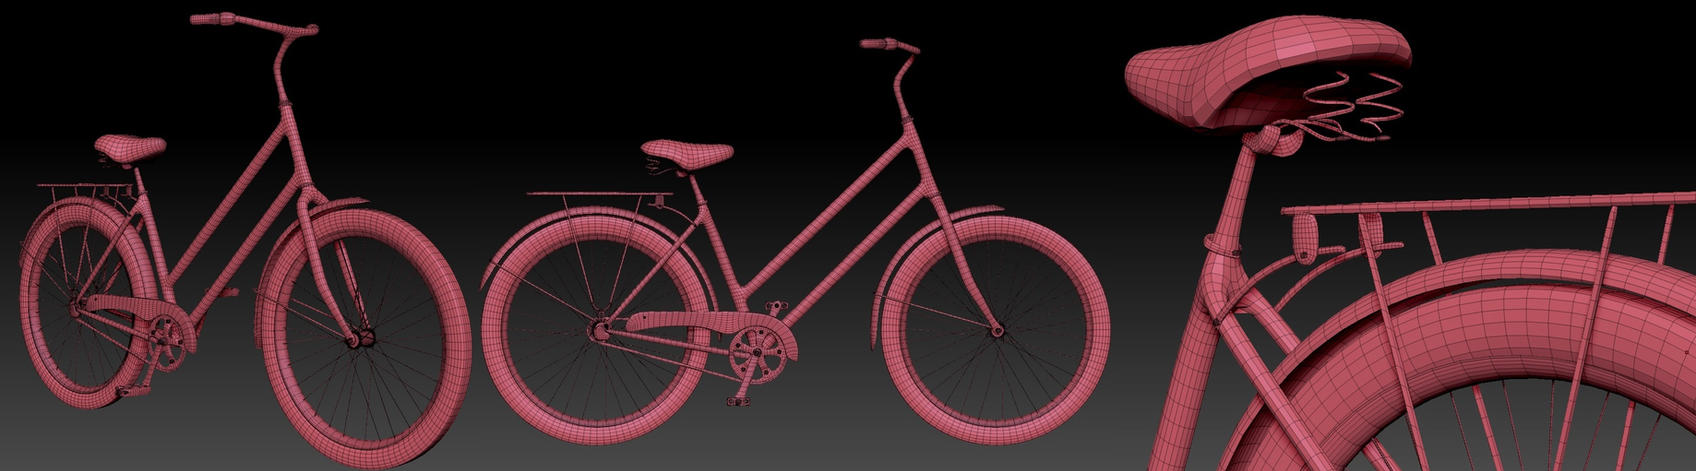 Bicycle - NHTV IGAD Assignment by Sa66